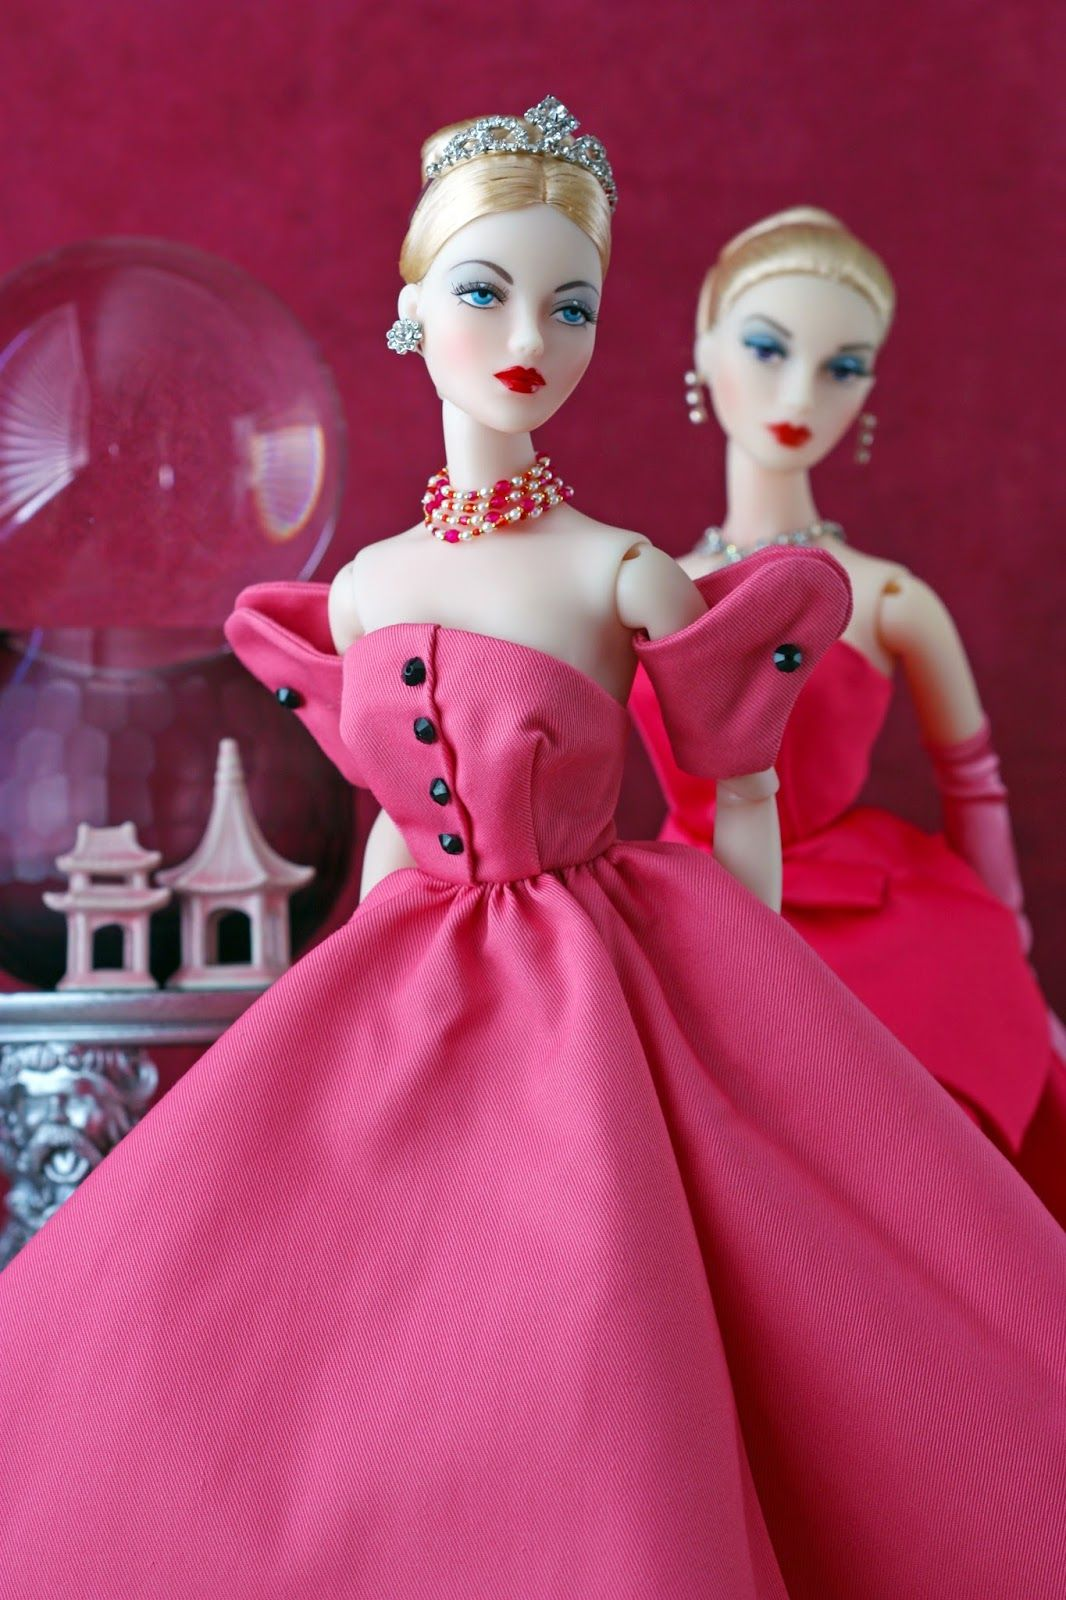 Ring In The New (With images) Barbie girl, I'm a barbie